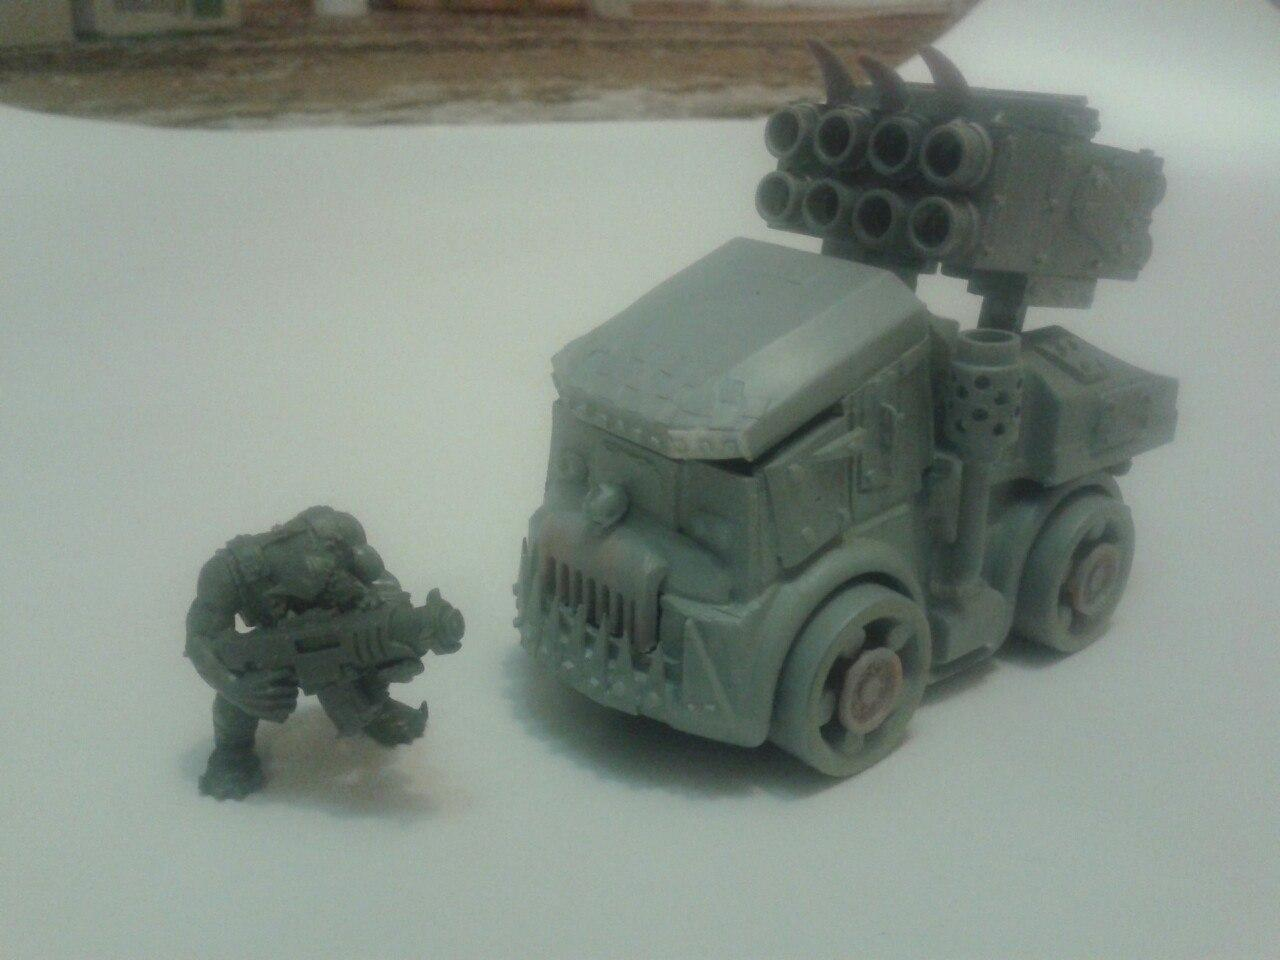 Buggy, Conversion, Orcs, Orks, Toy